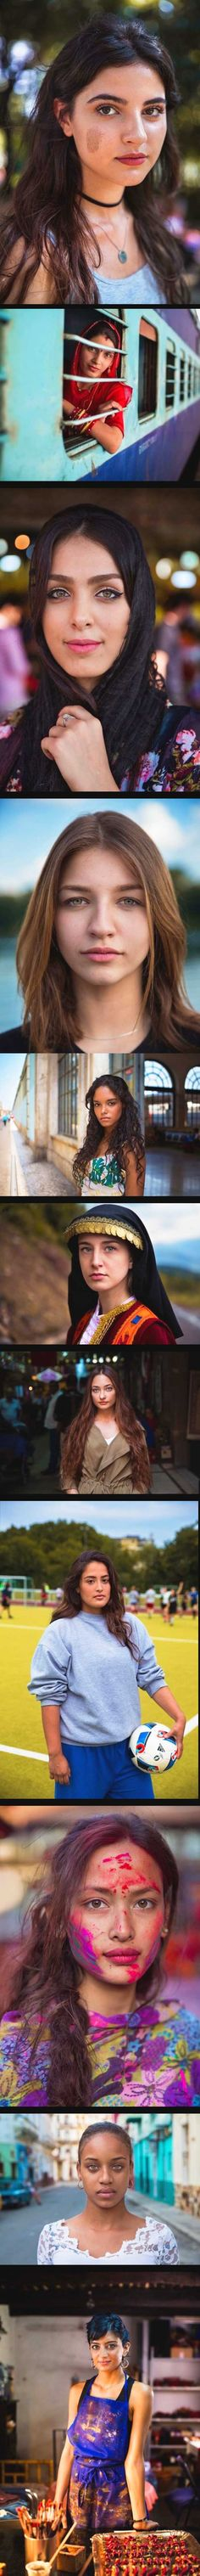 Different Faces Of Women Around The World Captured By Camera   Mihaela Noroc is a 31 years old photographer from Romania and she spent 4 years traveling in different countries of the world with her backpack.  http://www.buzzthisviral.com/different-faces-women-around-world-captured-camera/  #photo #photos #pic #pics #picture #pictures #snapshot #art #beautiful #instagood #picoftheday #photooftheday #color #all_shots #exposure #composition #focus #capture #moment